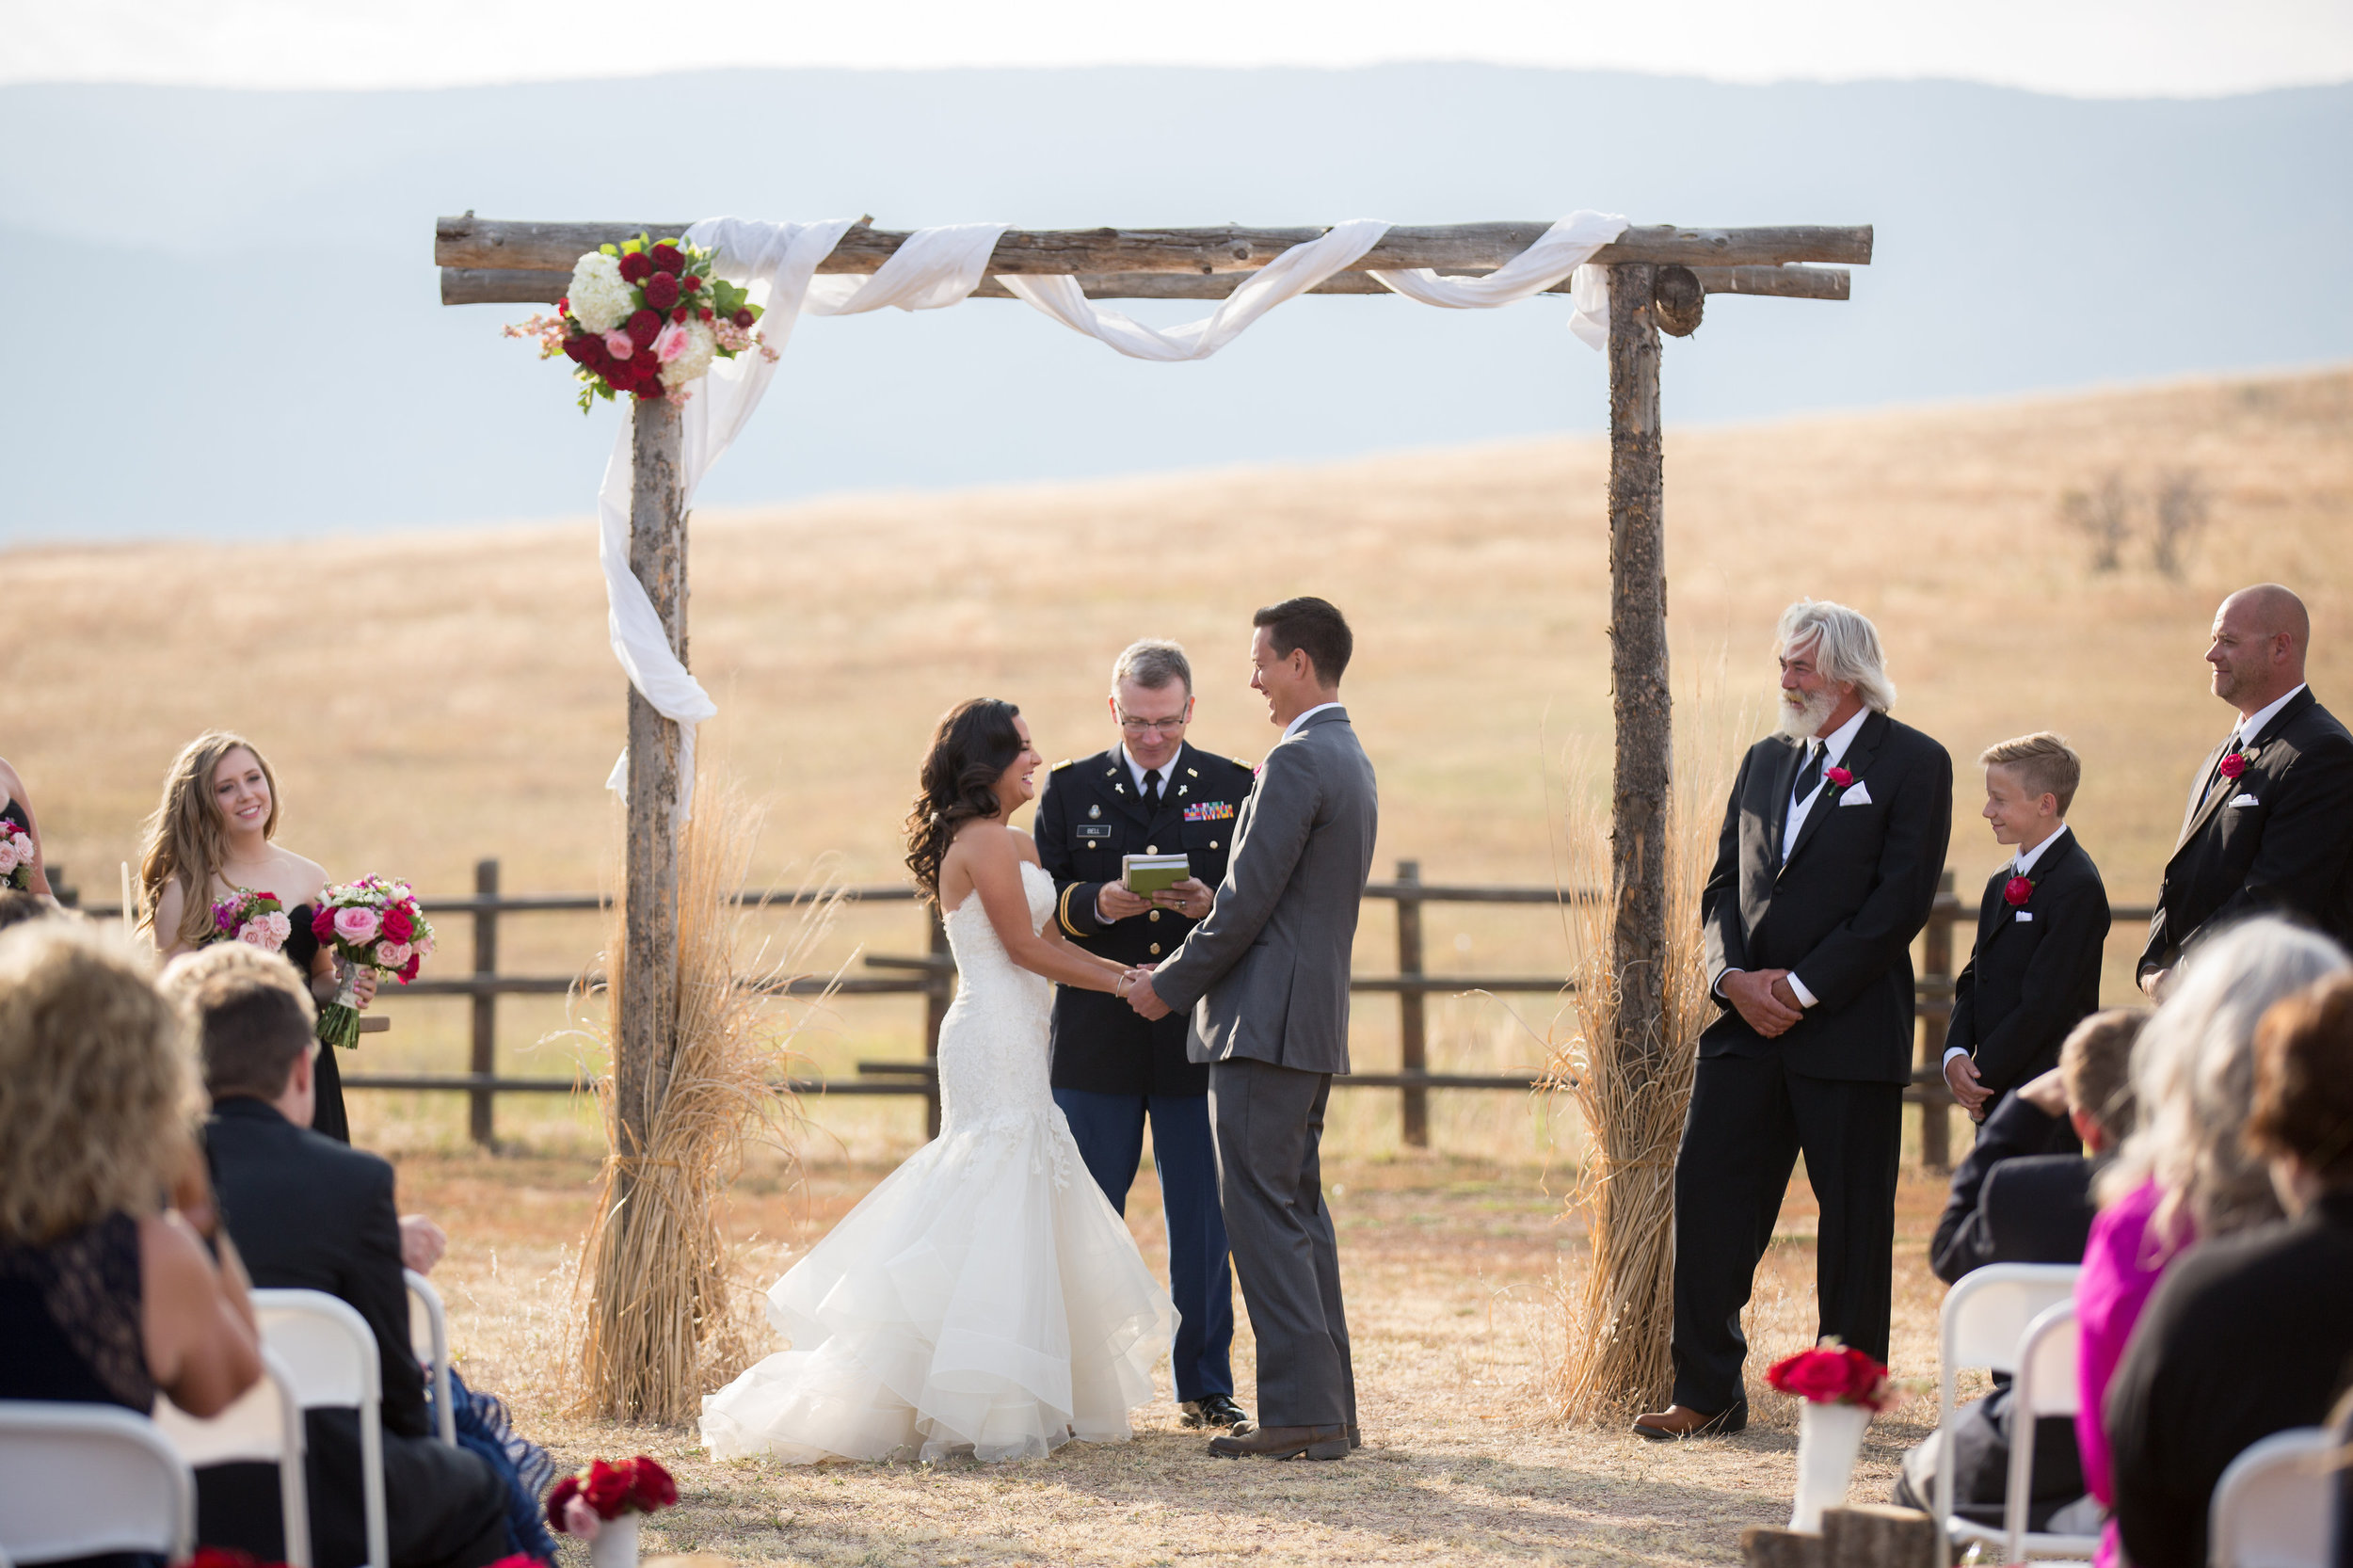 Wiens Ranch Wedding Colorado | Liancarlo 6803 Wedding Gown from Little White Dress | Jamie Beth Photography